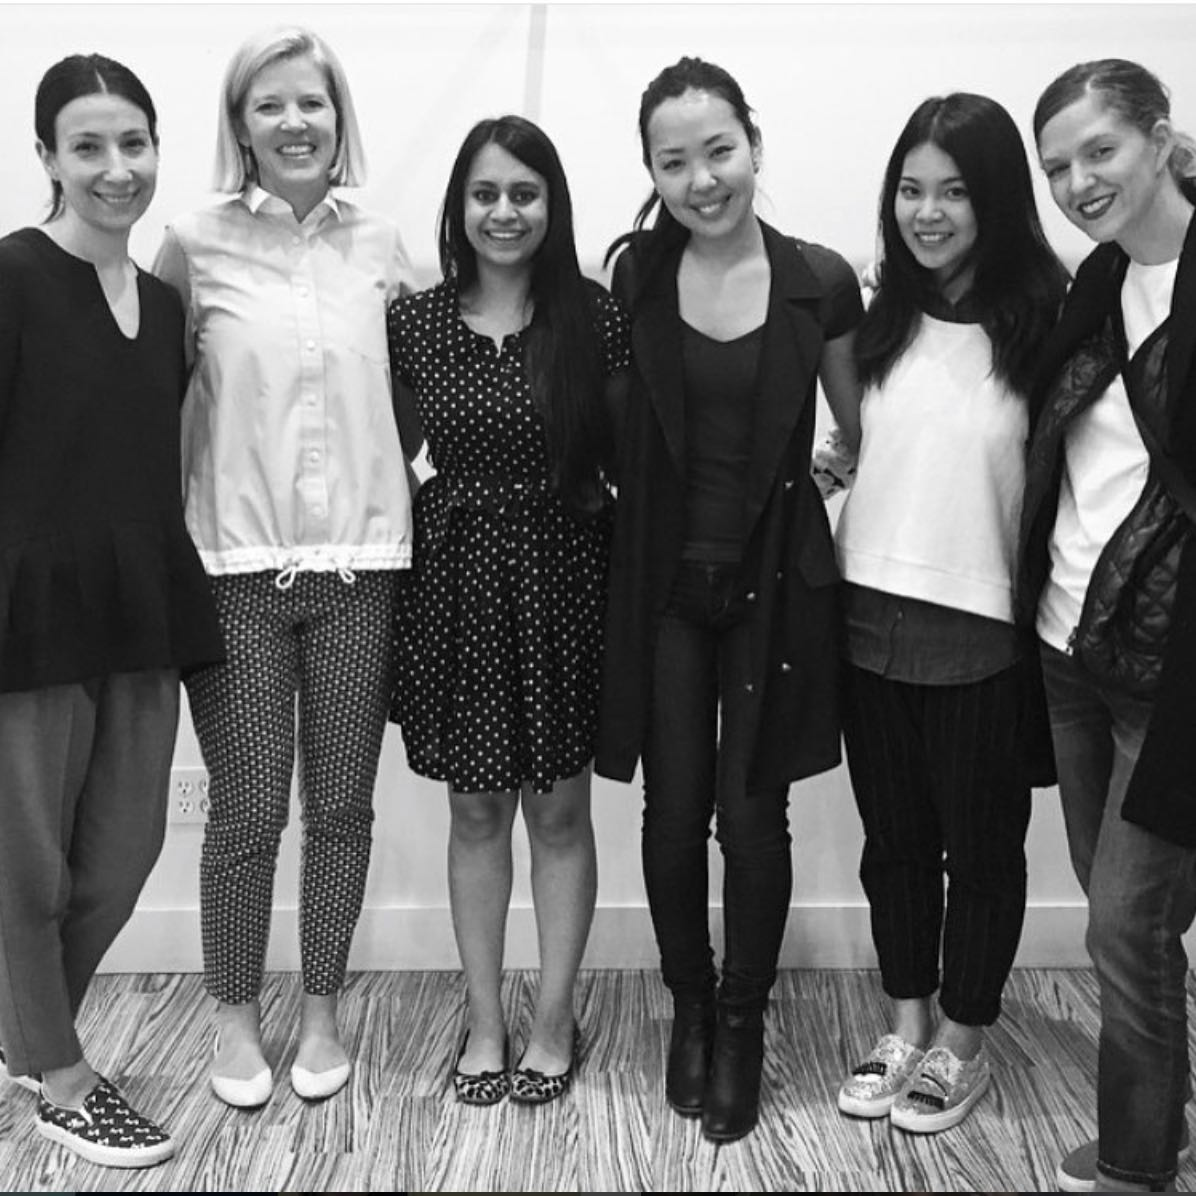 the 2015 Lela Rose design team:  Leonora, Lela, me, Demi, Reni, Felicia (from left to right).